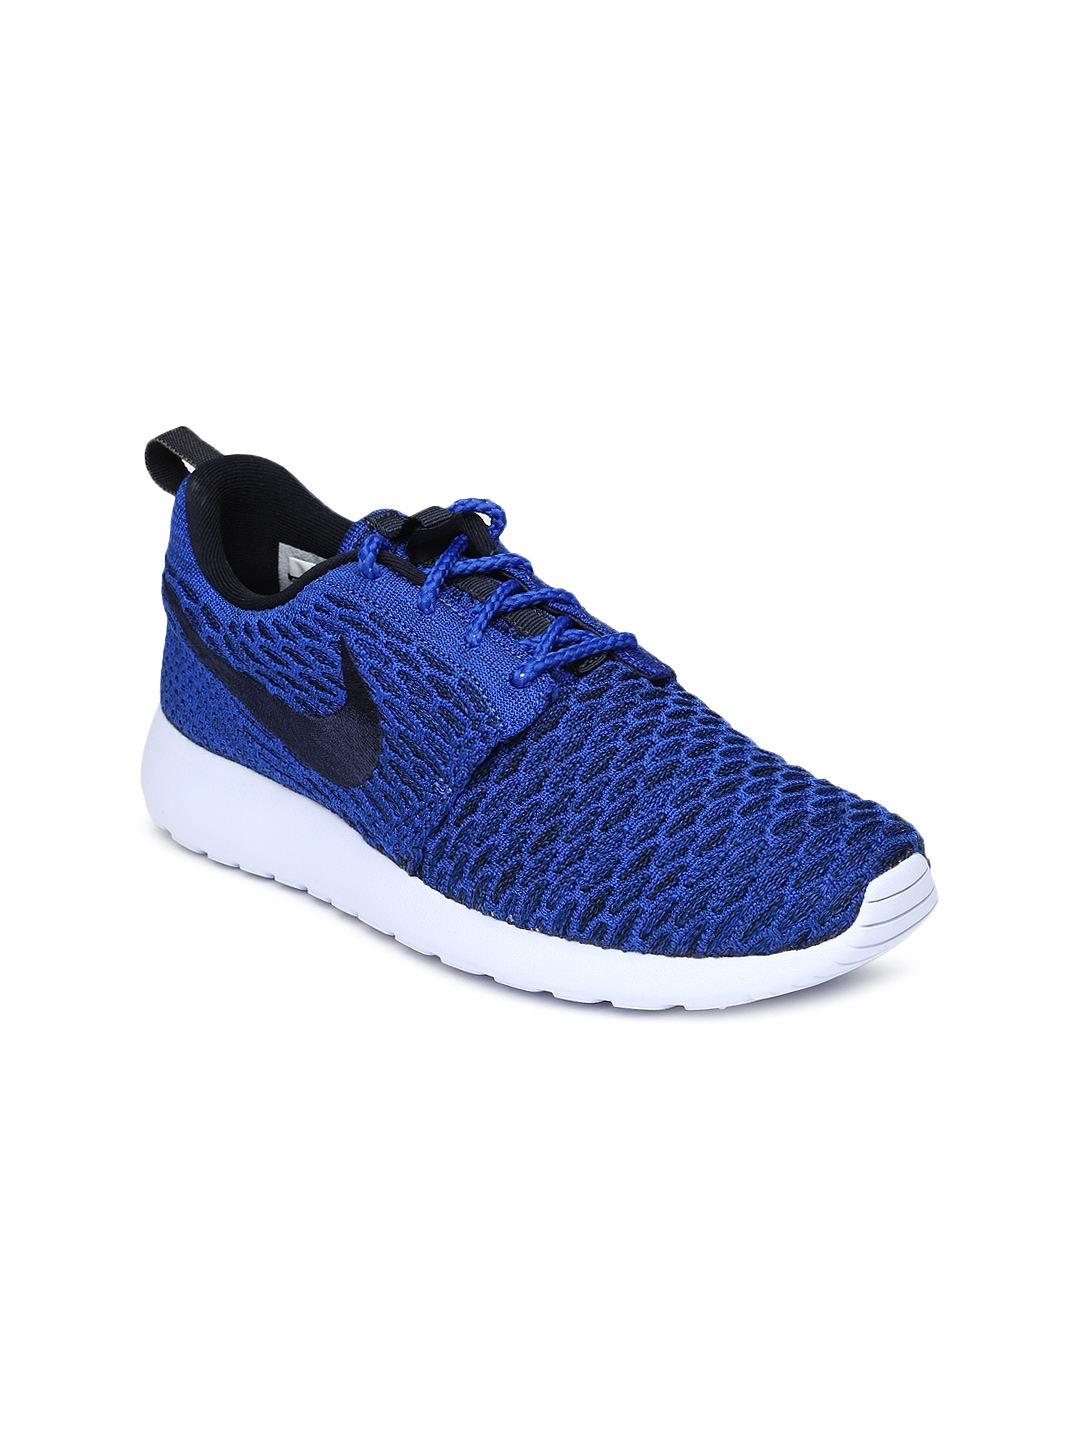 myntra nike blue roshe one flyknit casual shoes